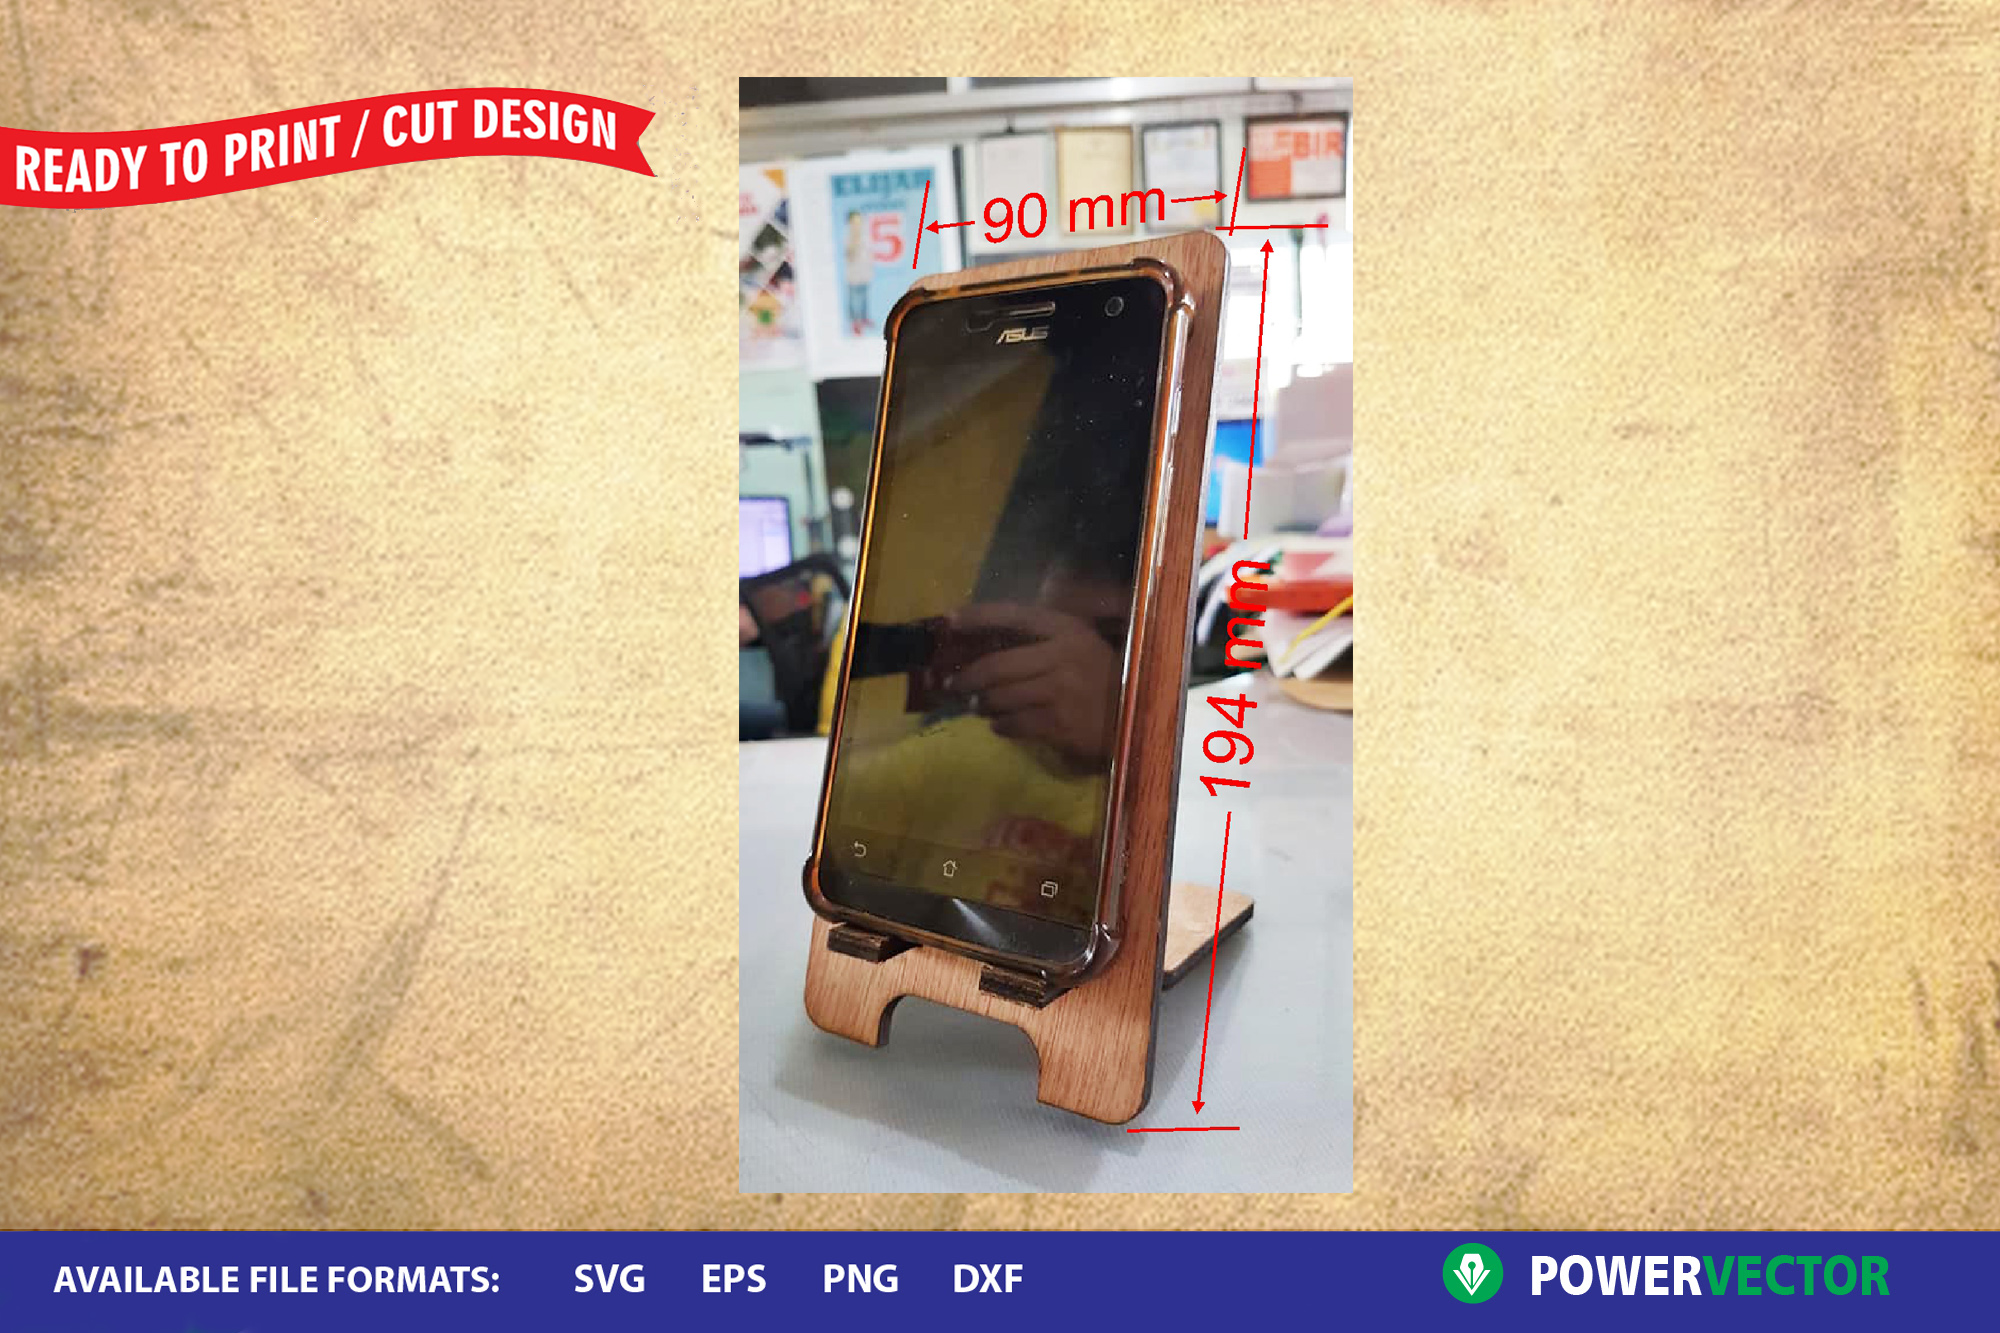 Cellphone Stand template for Laser, CNC Cutting Engraving example image 2